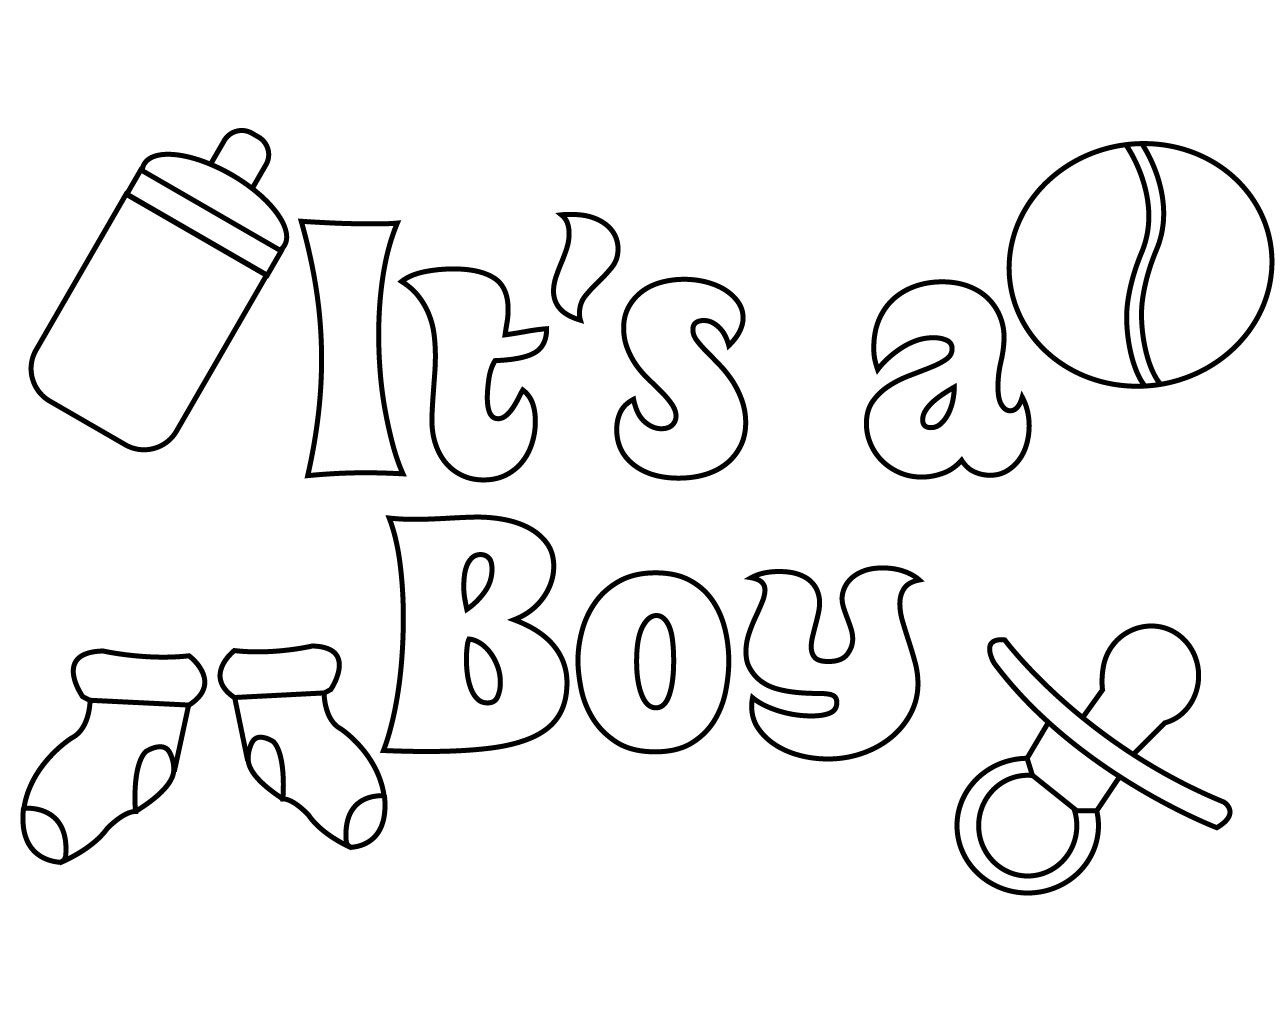 Baby Shower Coloring Pages For Boy | Careersplay | Baby Shower - Free Printable Baby Shower Coloring Pages